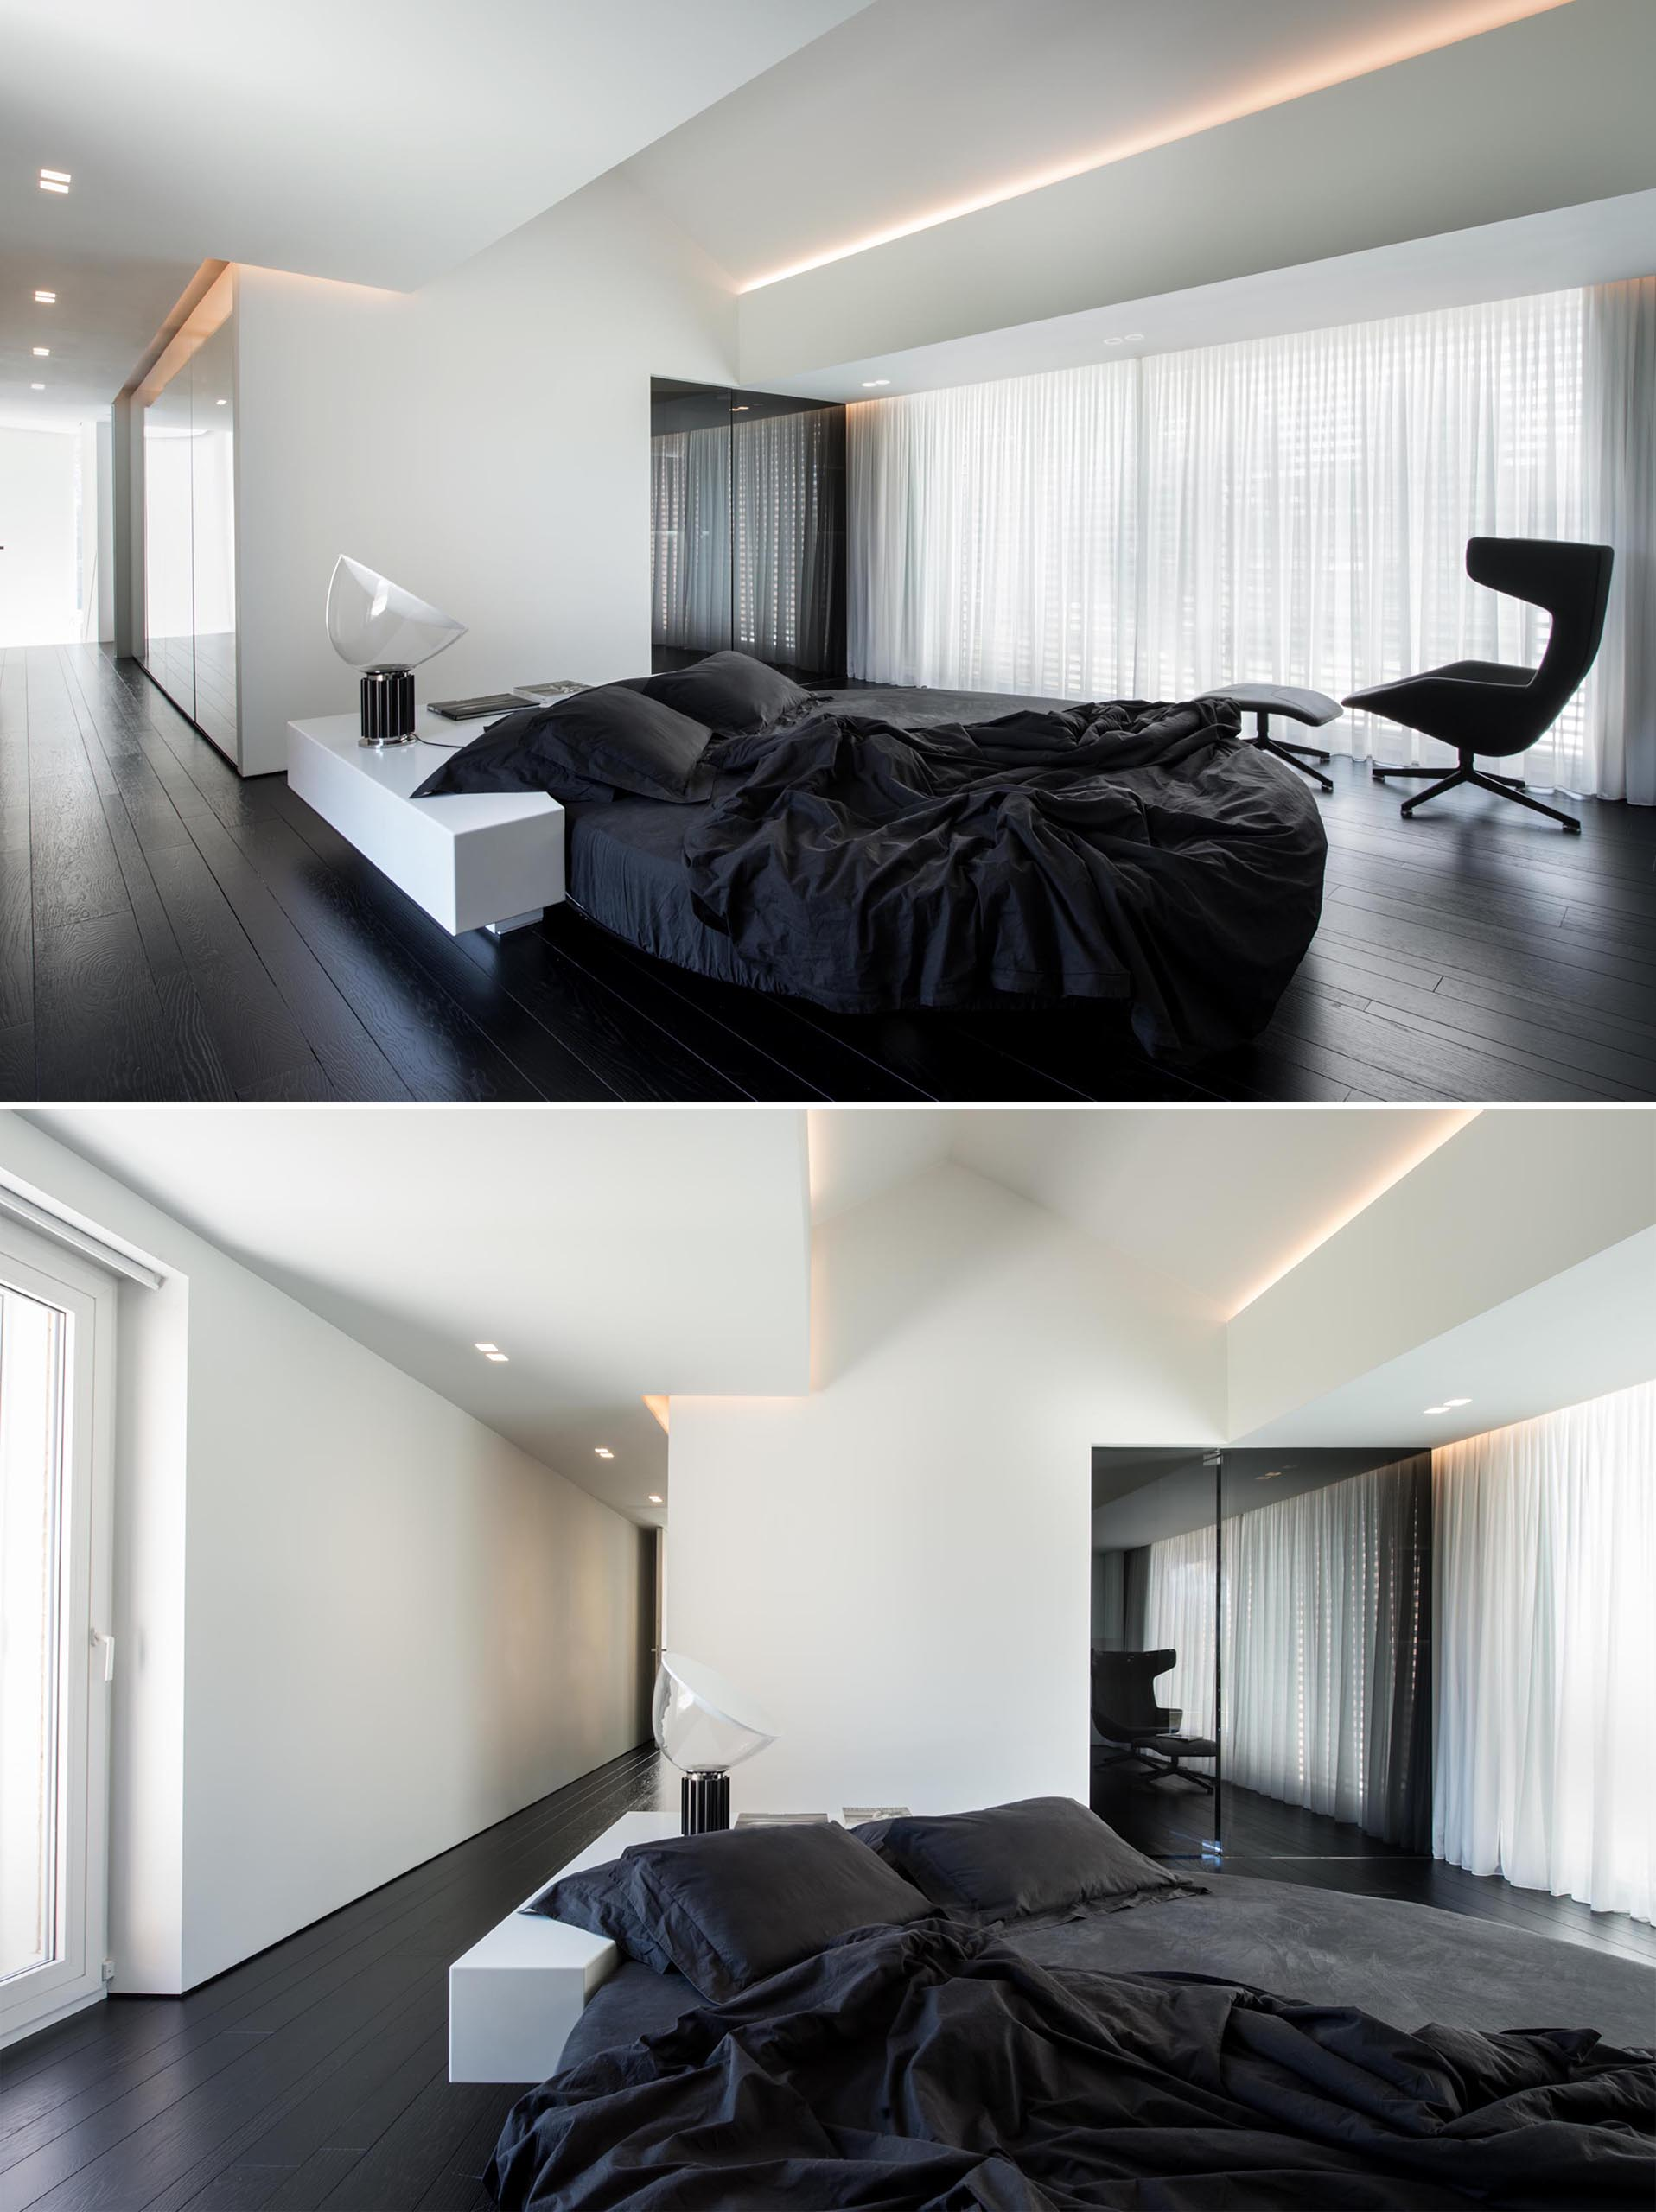 A modern bedroom with a black and white color palette, and a round bed.